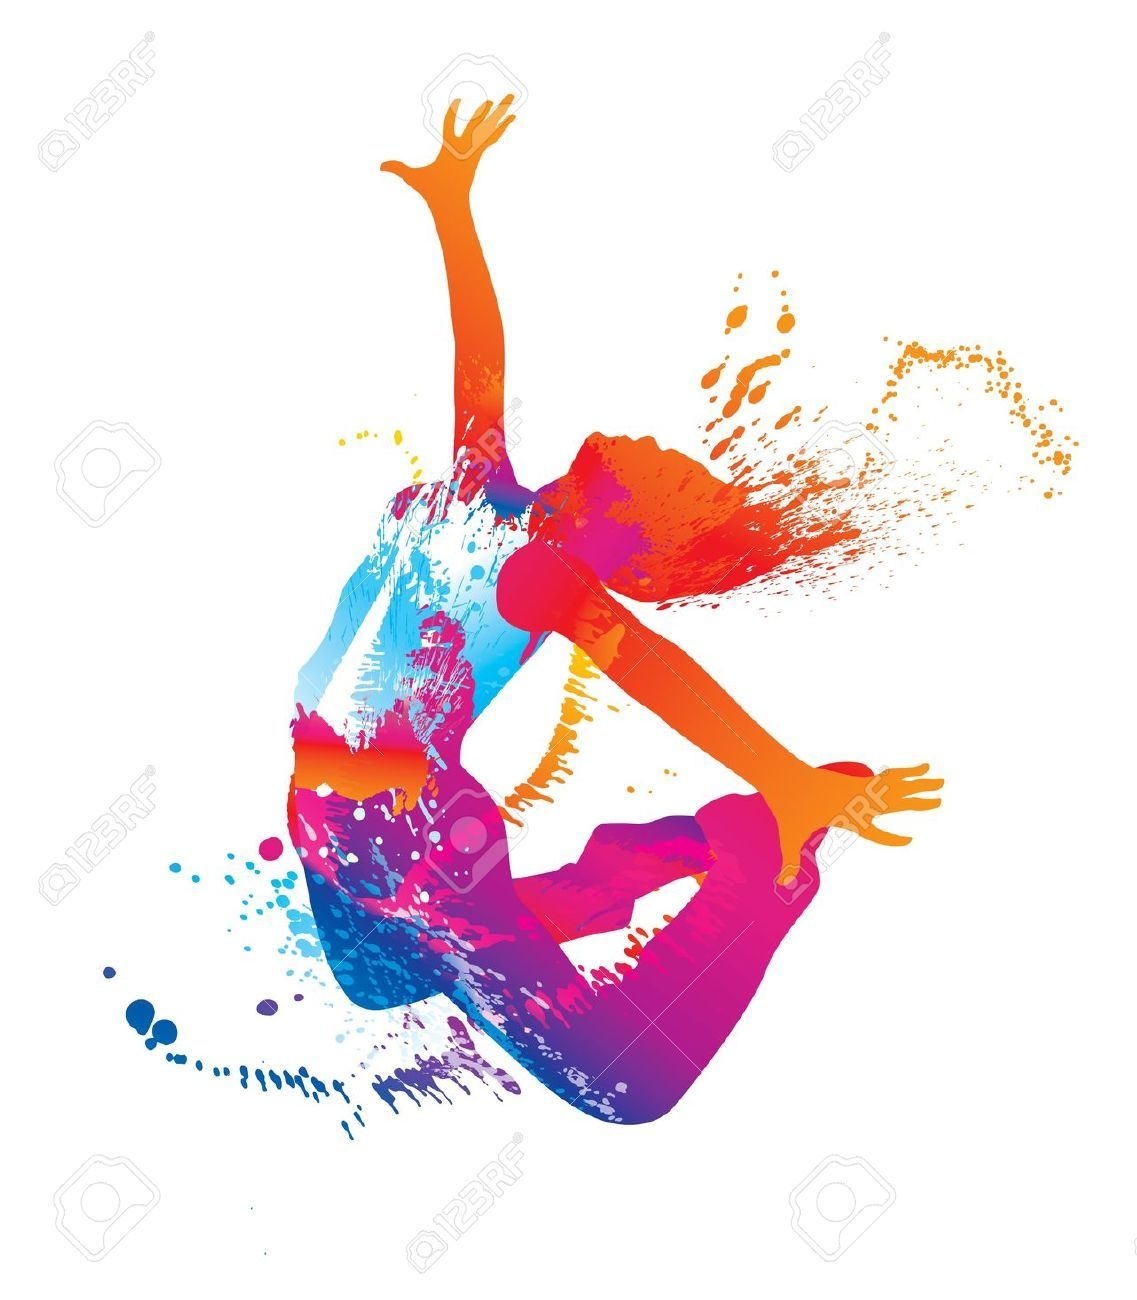 Colors clipart dance. Jump the dancing girl